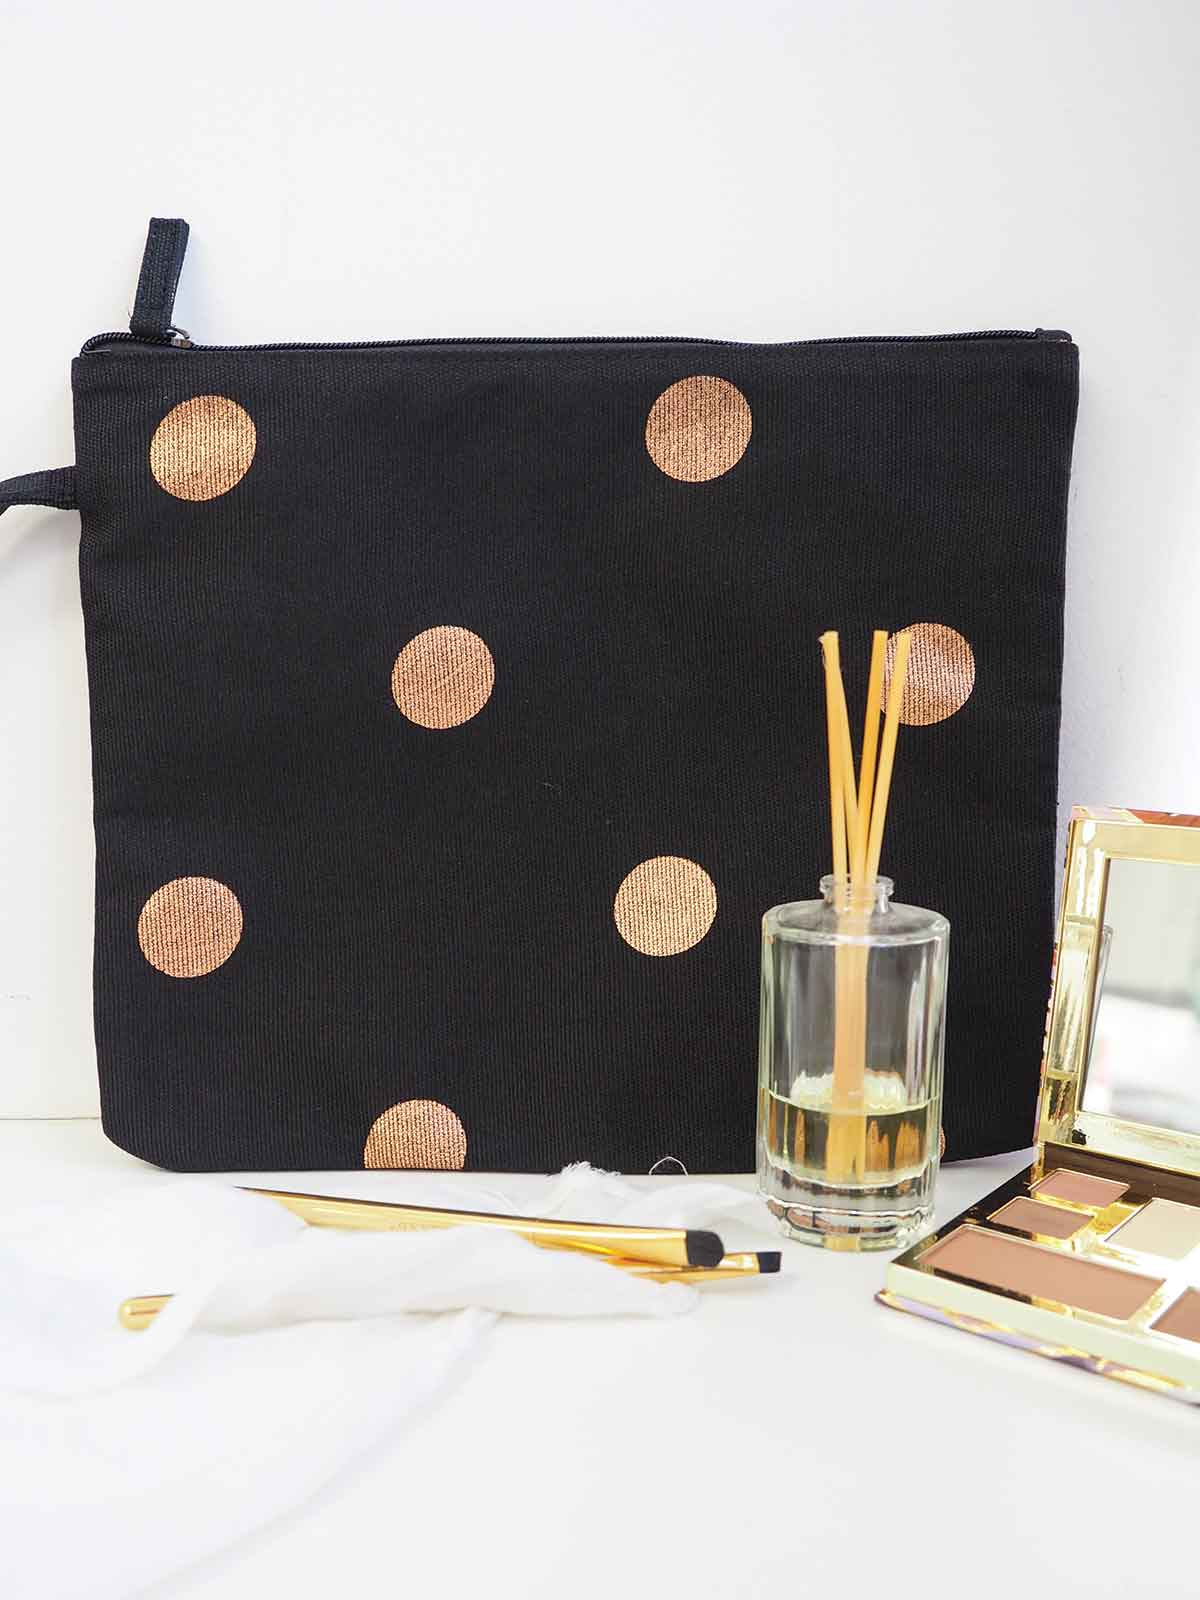 SPOT OF GOLD MAKEUP BAG